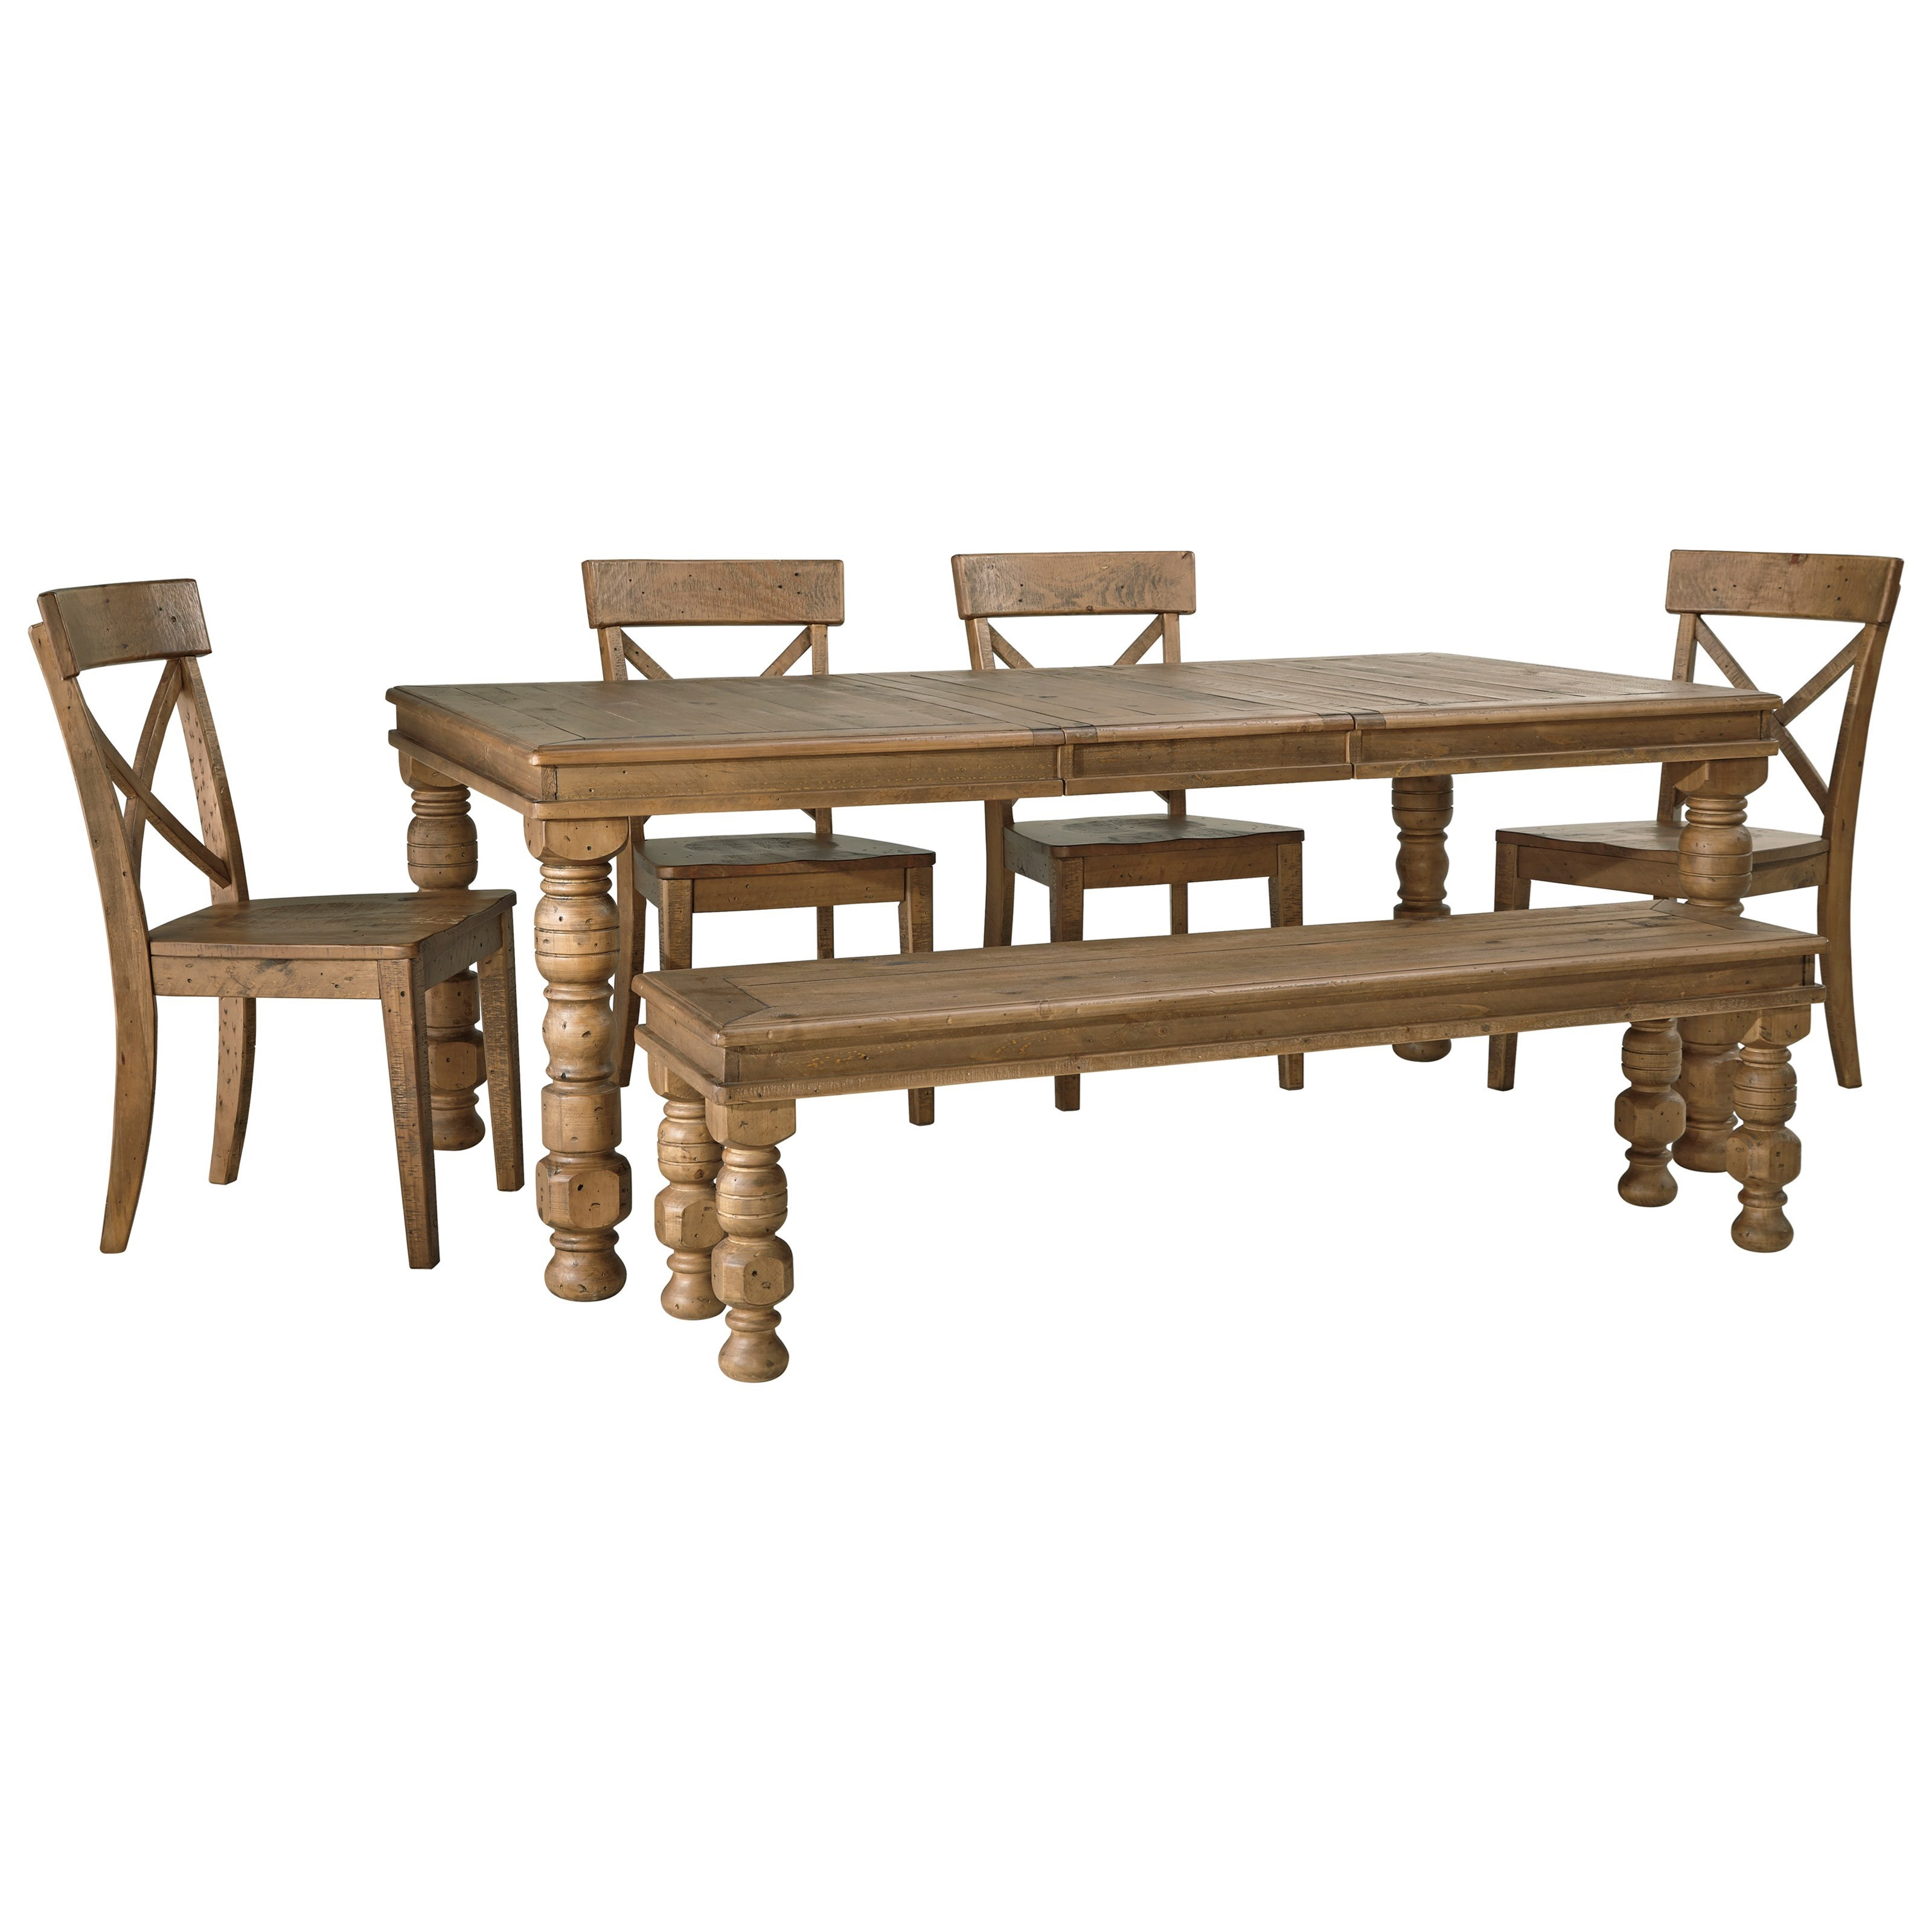 Signature Design by Ashley Trishley 6-Piece Dining Table Set with Bench - Item Number: D659-35+4x01+00